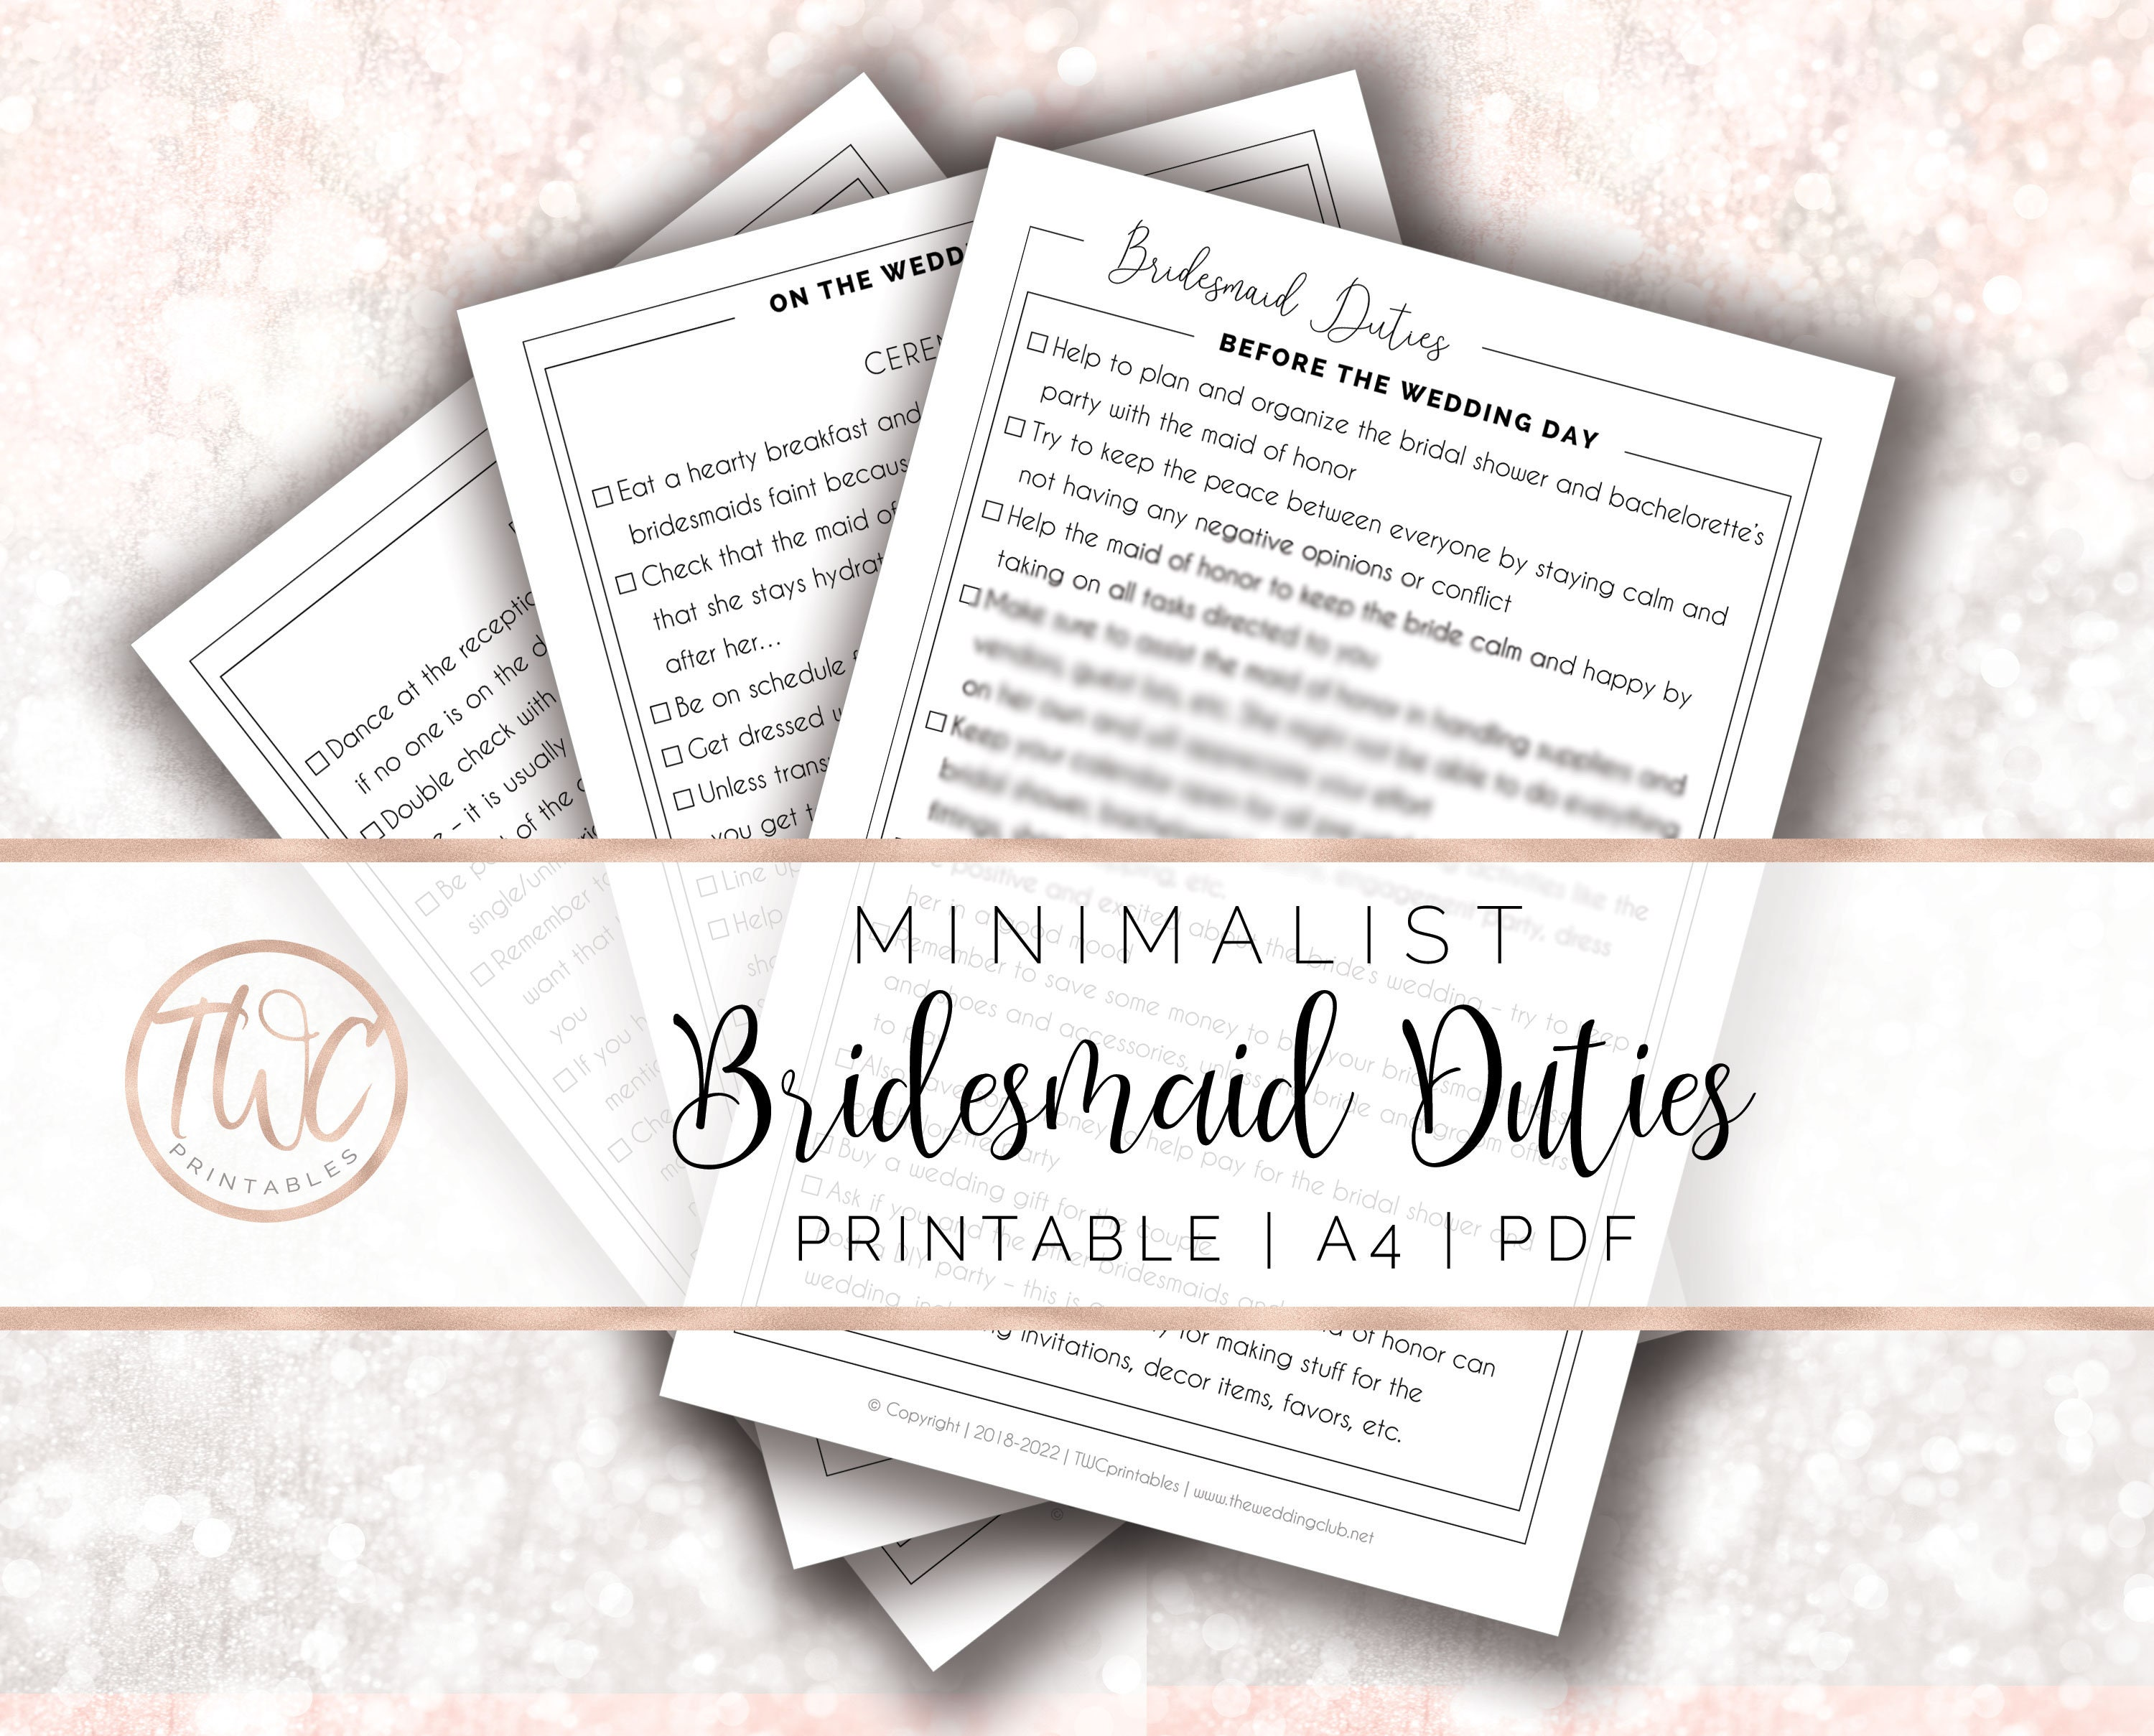 Bridesmaid Duties Bridesmaid List Of Duties Bridesmaid